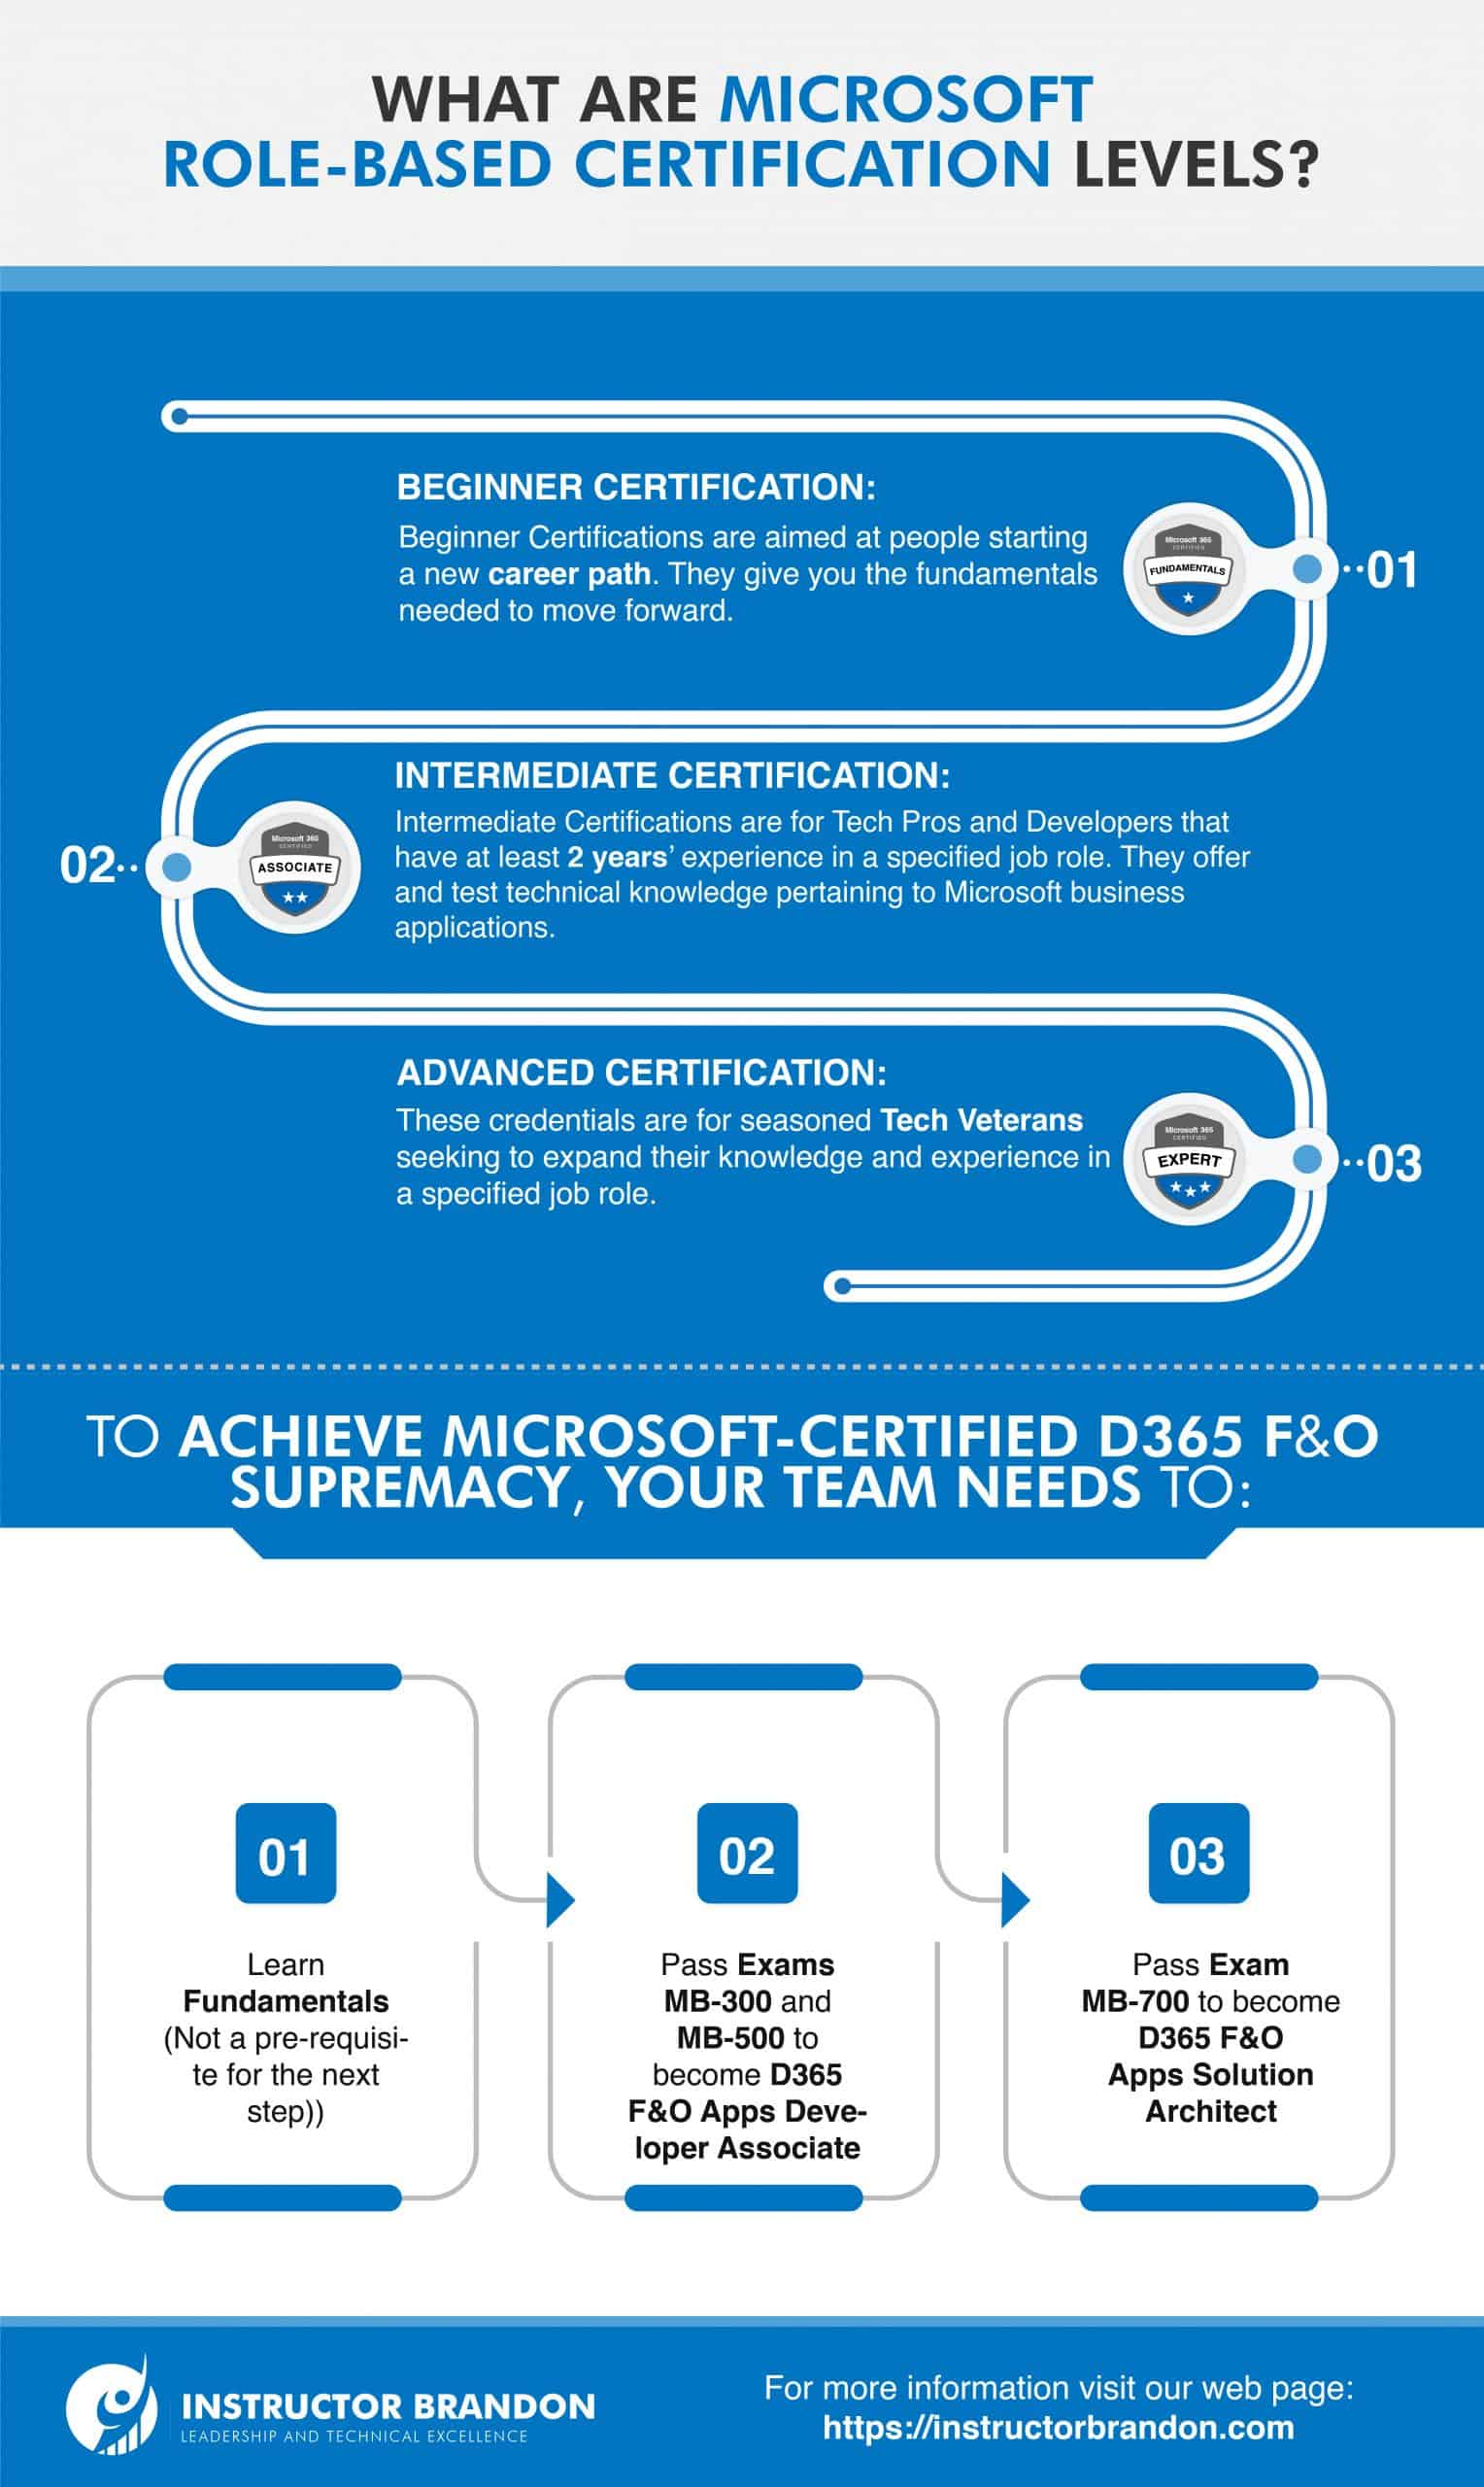 Image Describing the Different Microsoft Role-based Certification Levels